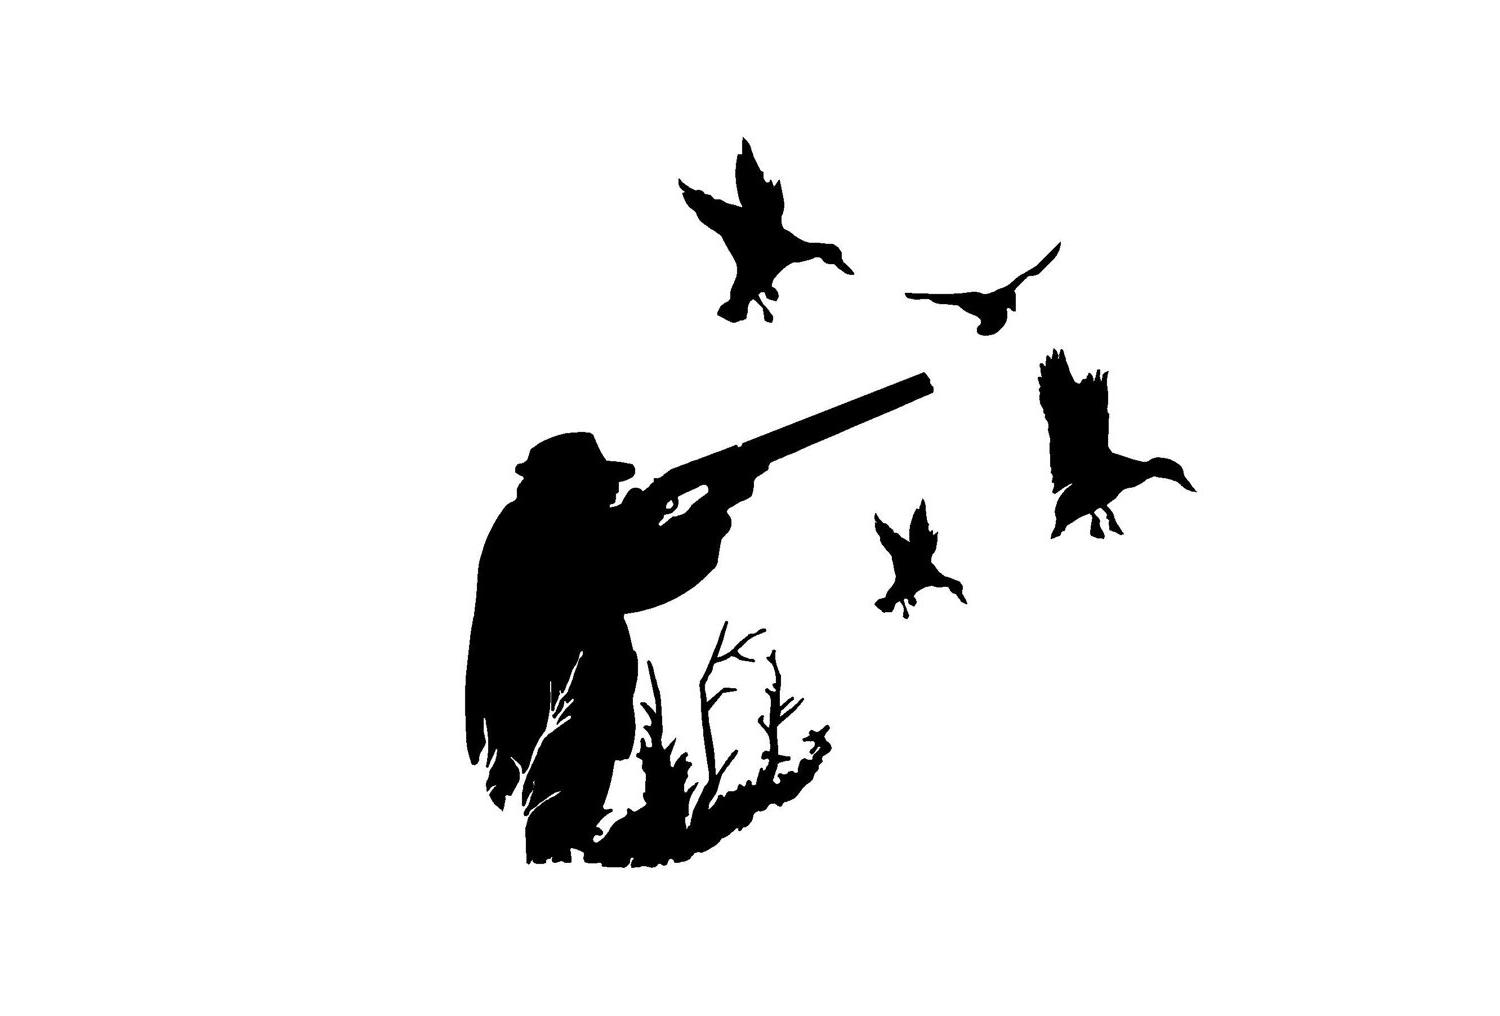 Hunting clipart waterfowl hunting. Duck silhouette free download